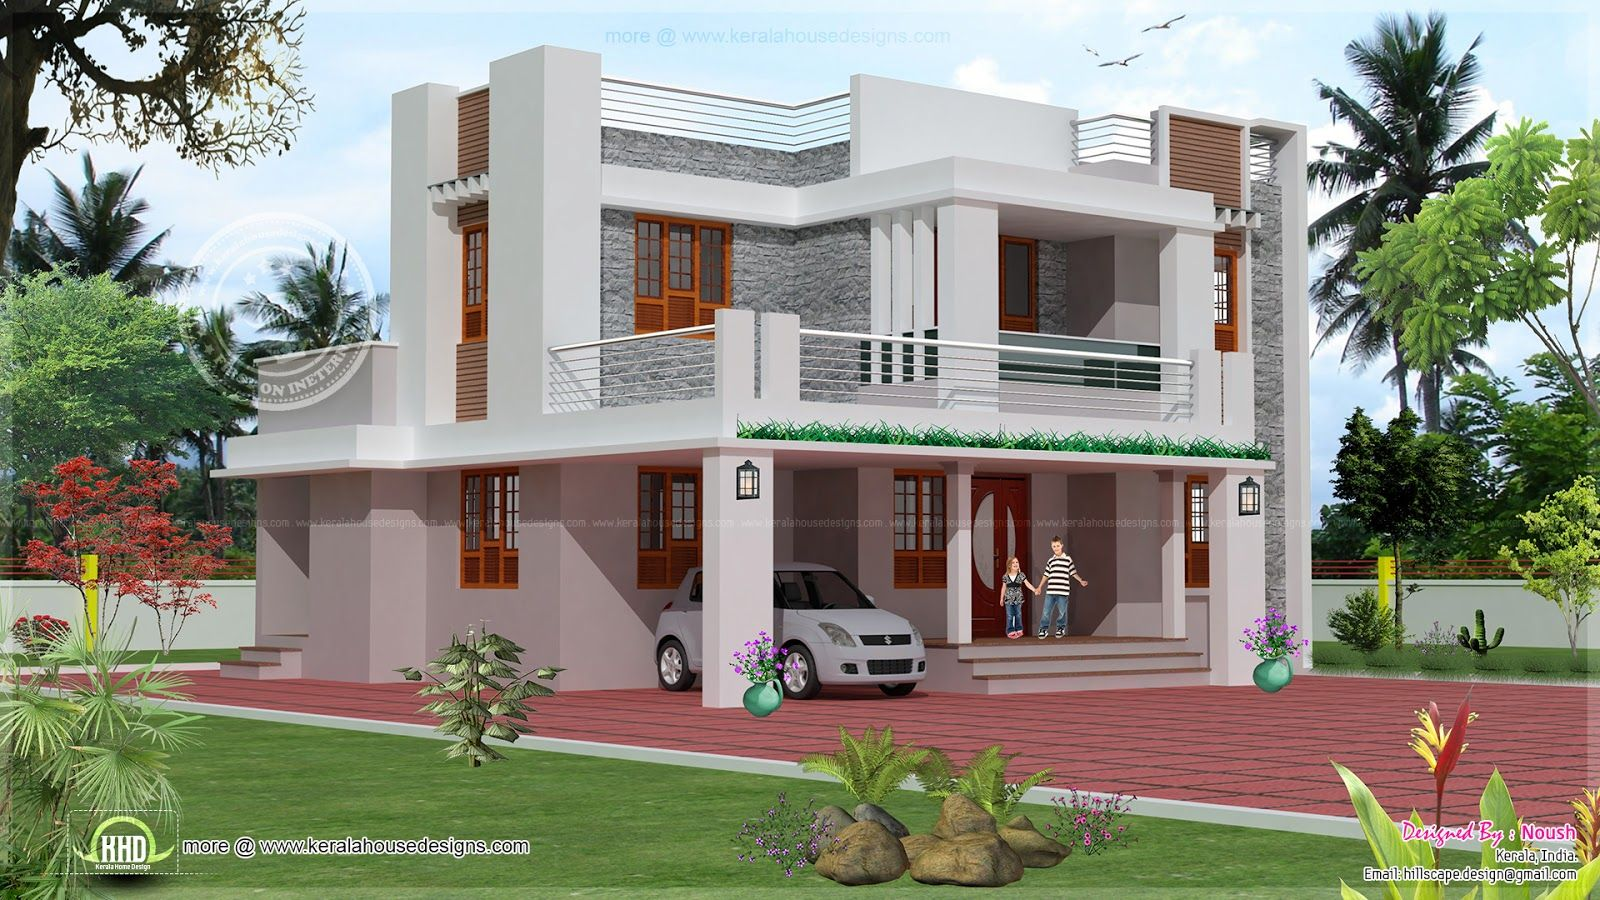 2 Story House Designs India